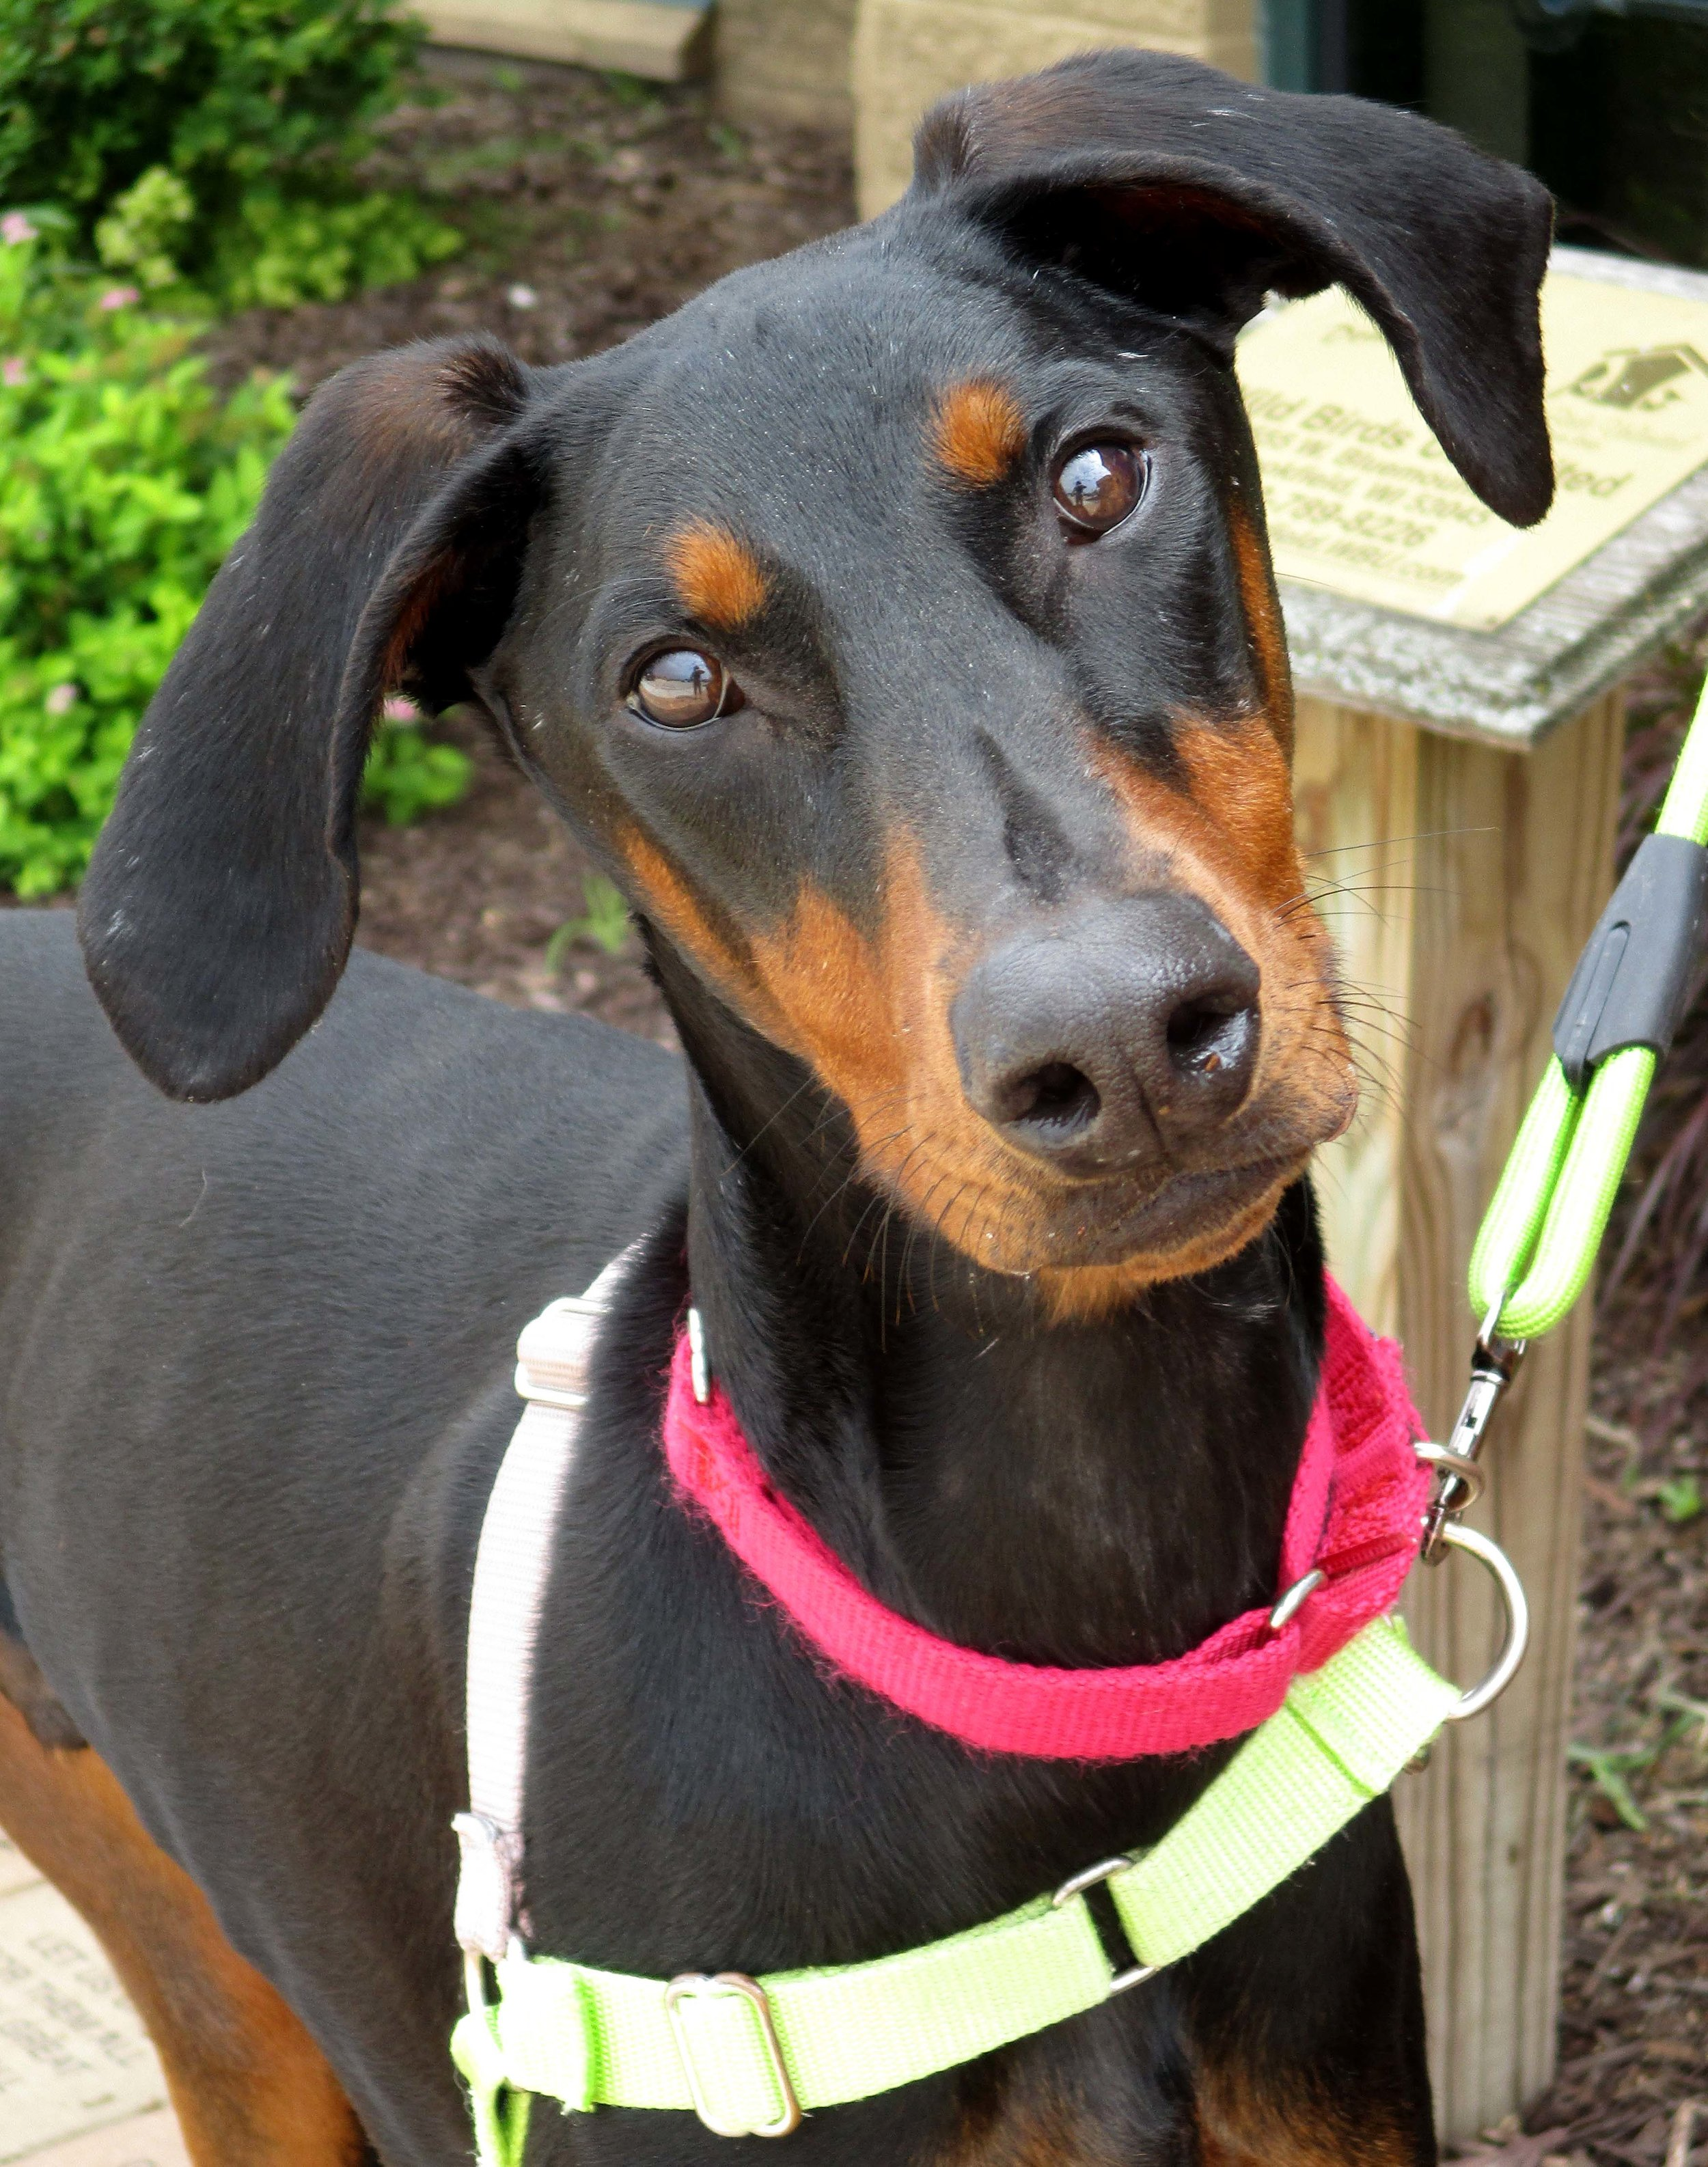 Ruger is is a 1 year old Doberman Pinscher. He has a fun and energetic personality!He will alert bark, so his future home cannot be an apartment or condominium. Once you earn his trust, you will have a best bud for life.